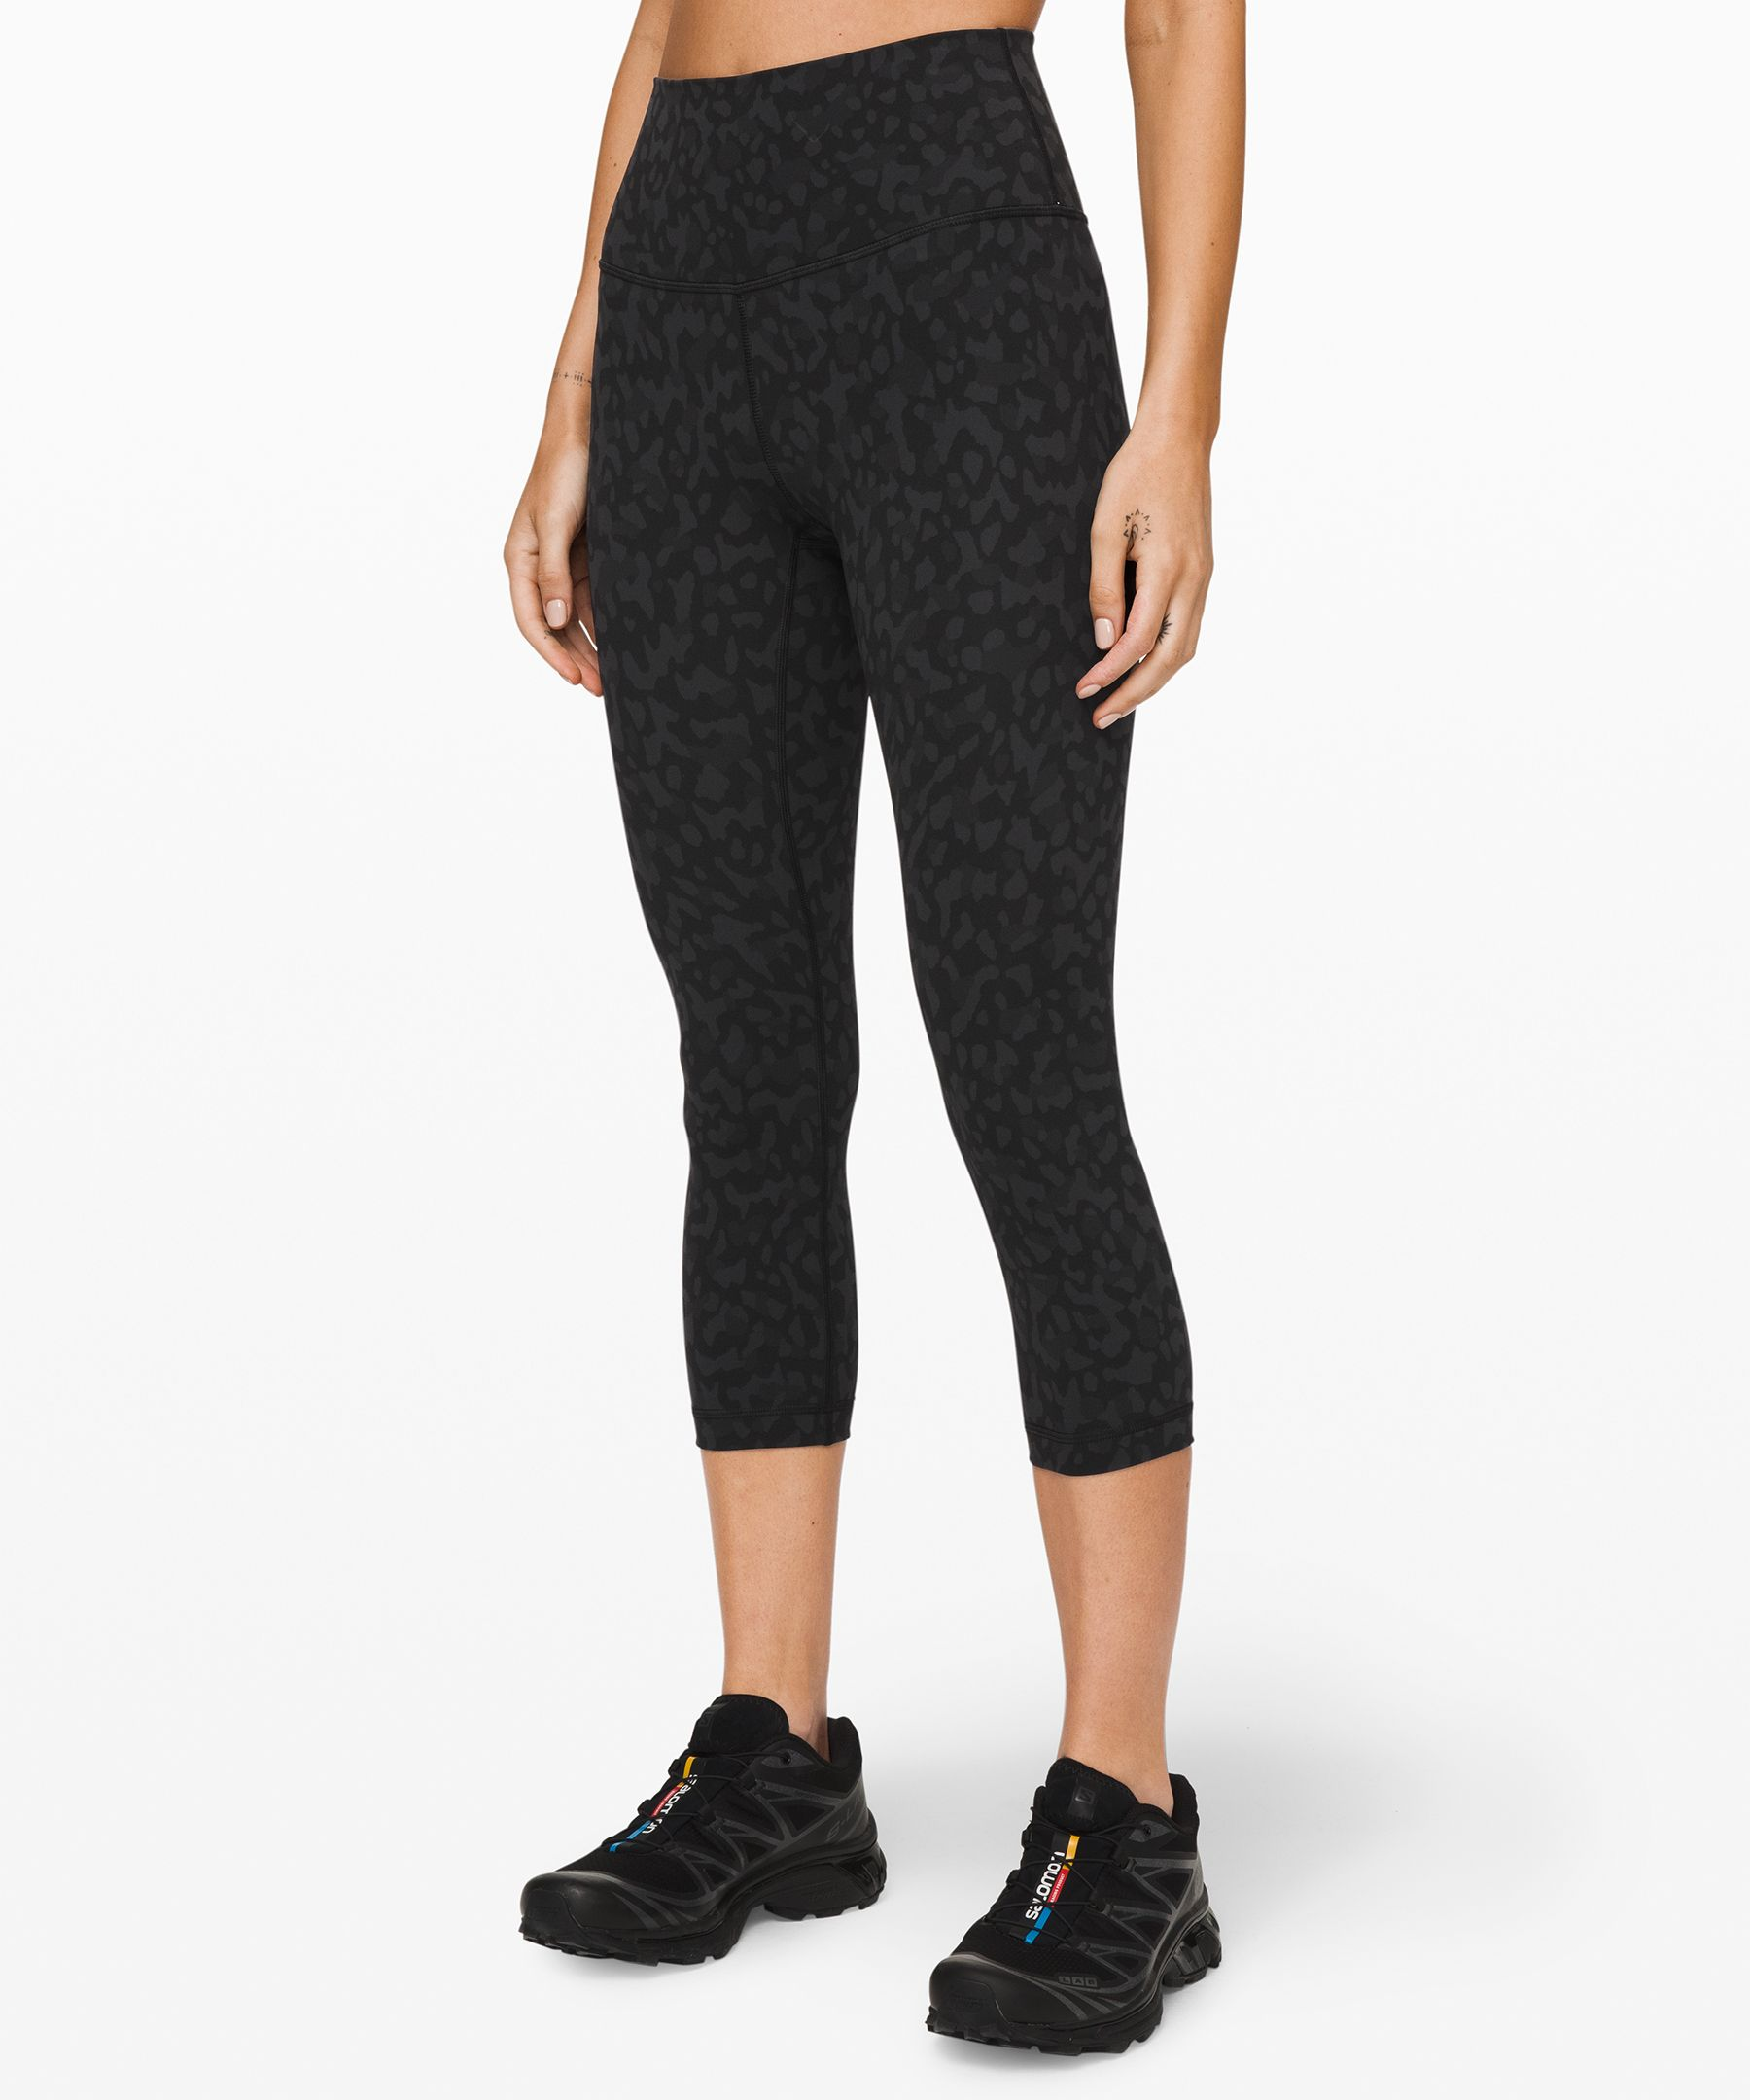 """Wunder Under Crop (High Rise) Full On Luxtreme 21\""""New by Lululemon"""